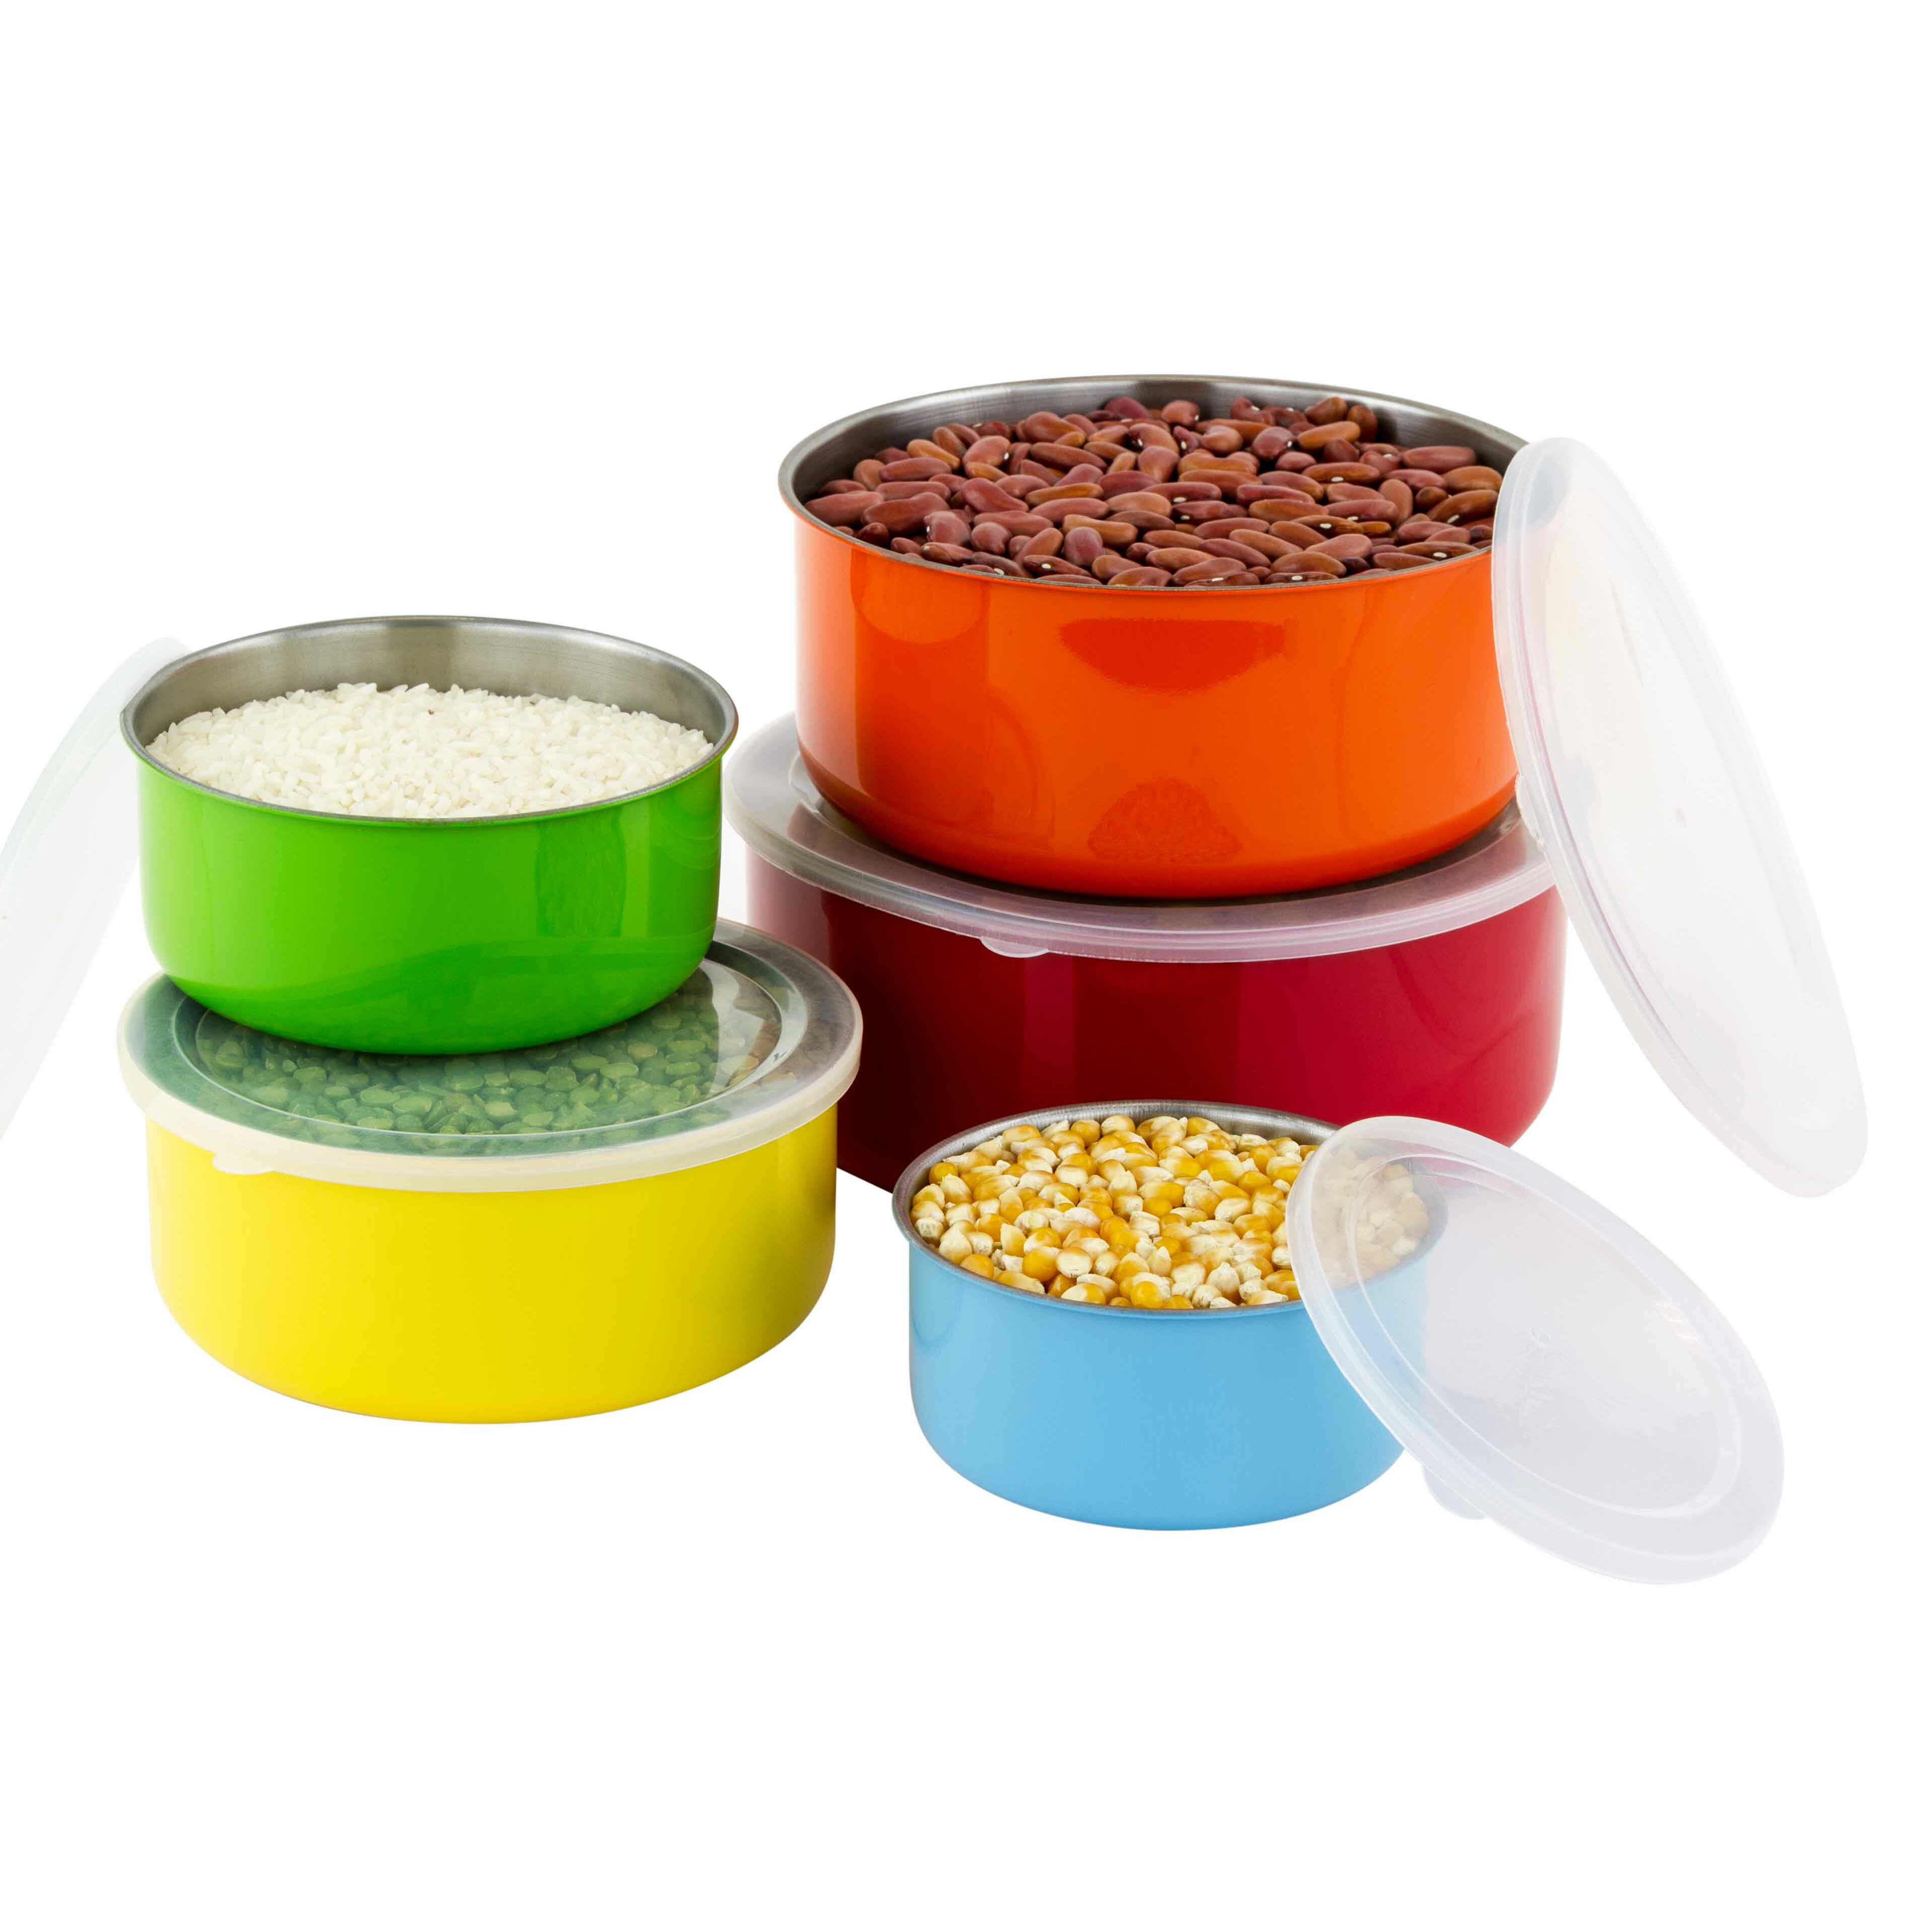 Cuisinart stainless steel mixing bowls with lids - Zipcode Trade Design Cynthia 10 Piece Colorful Stainless Steel Mixing Bowl Set